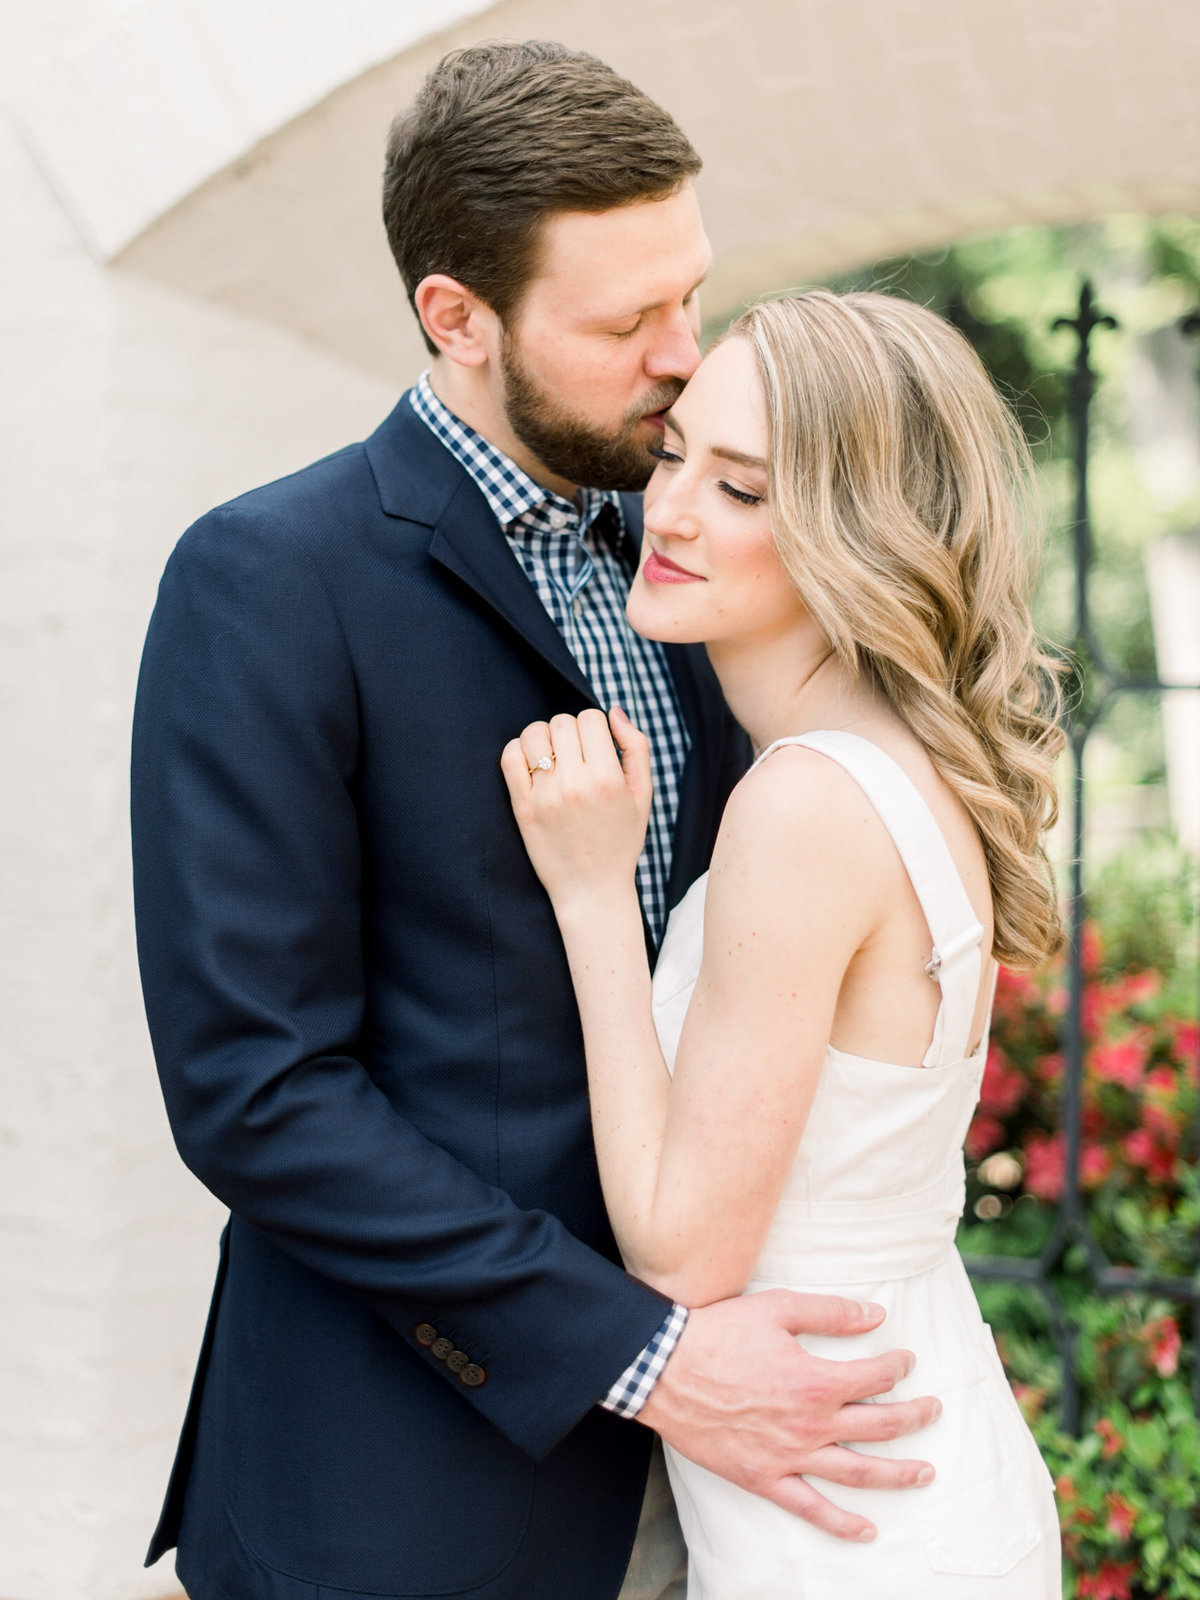 Courtney Hanson Photography - Dallas Spring Engagement Photos at Dallas Arboretum-2705